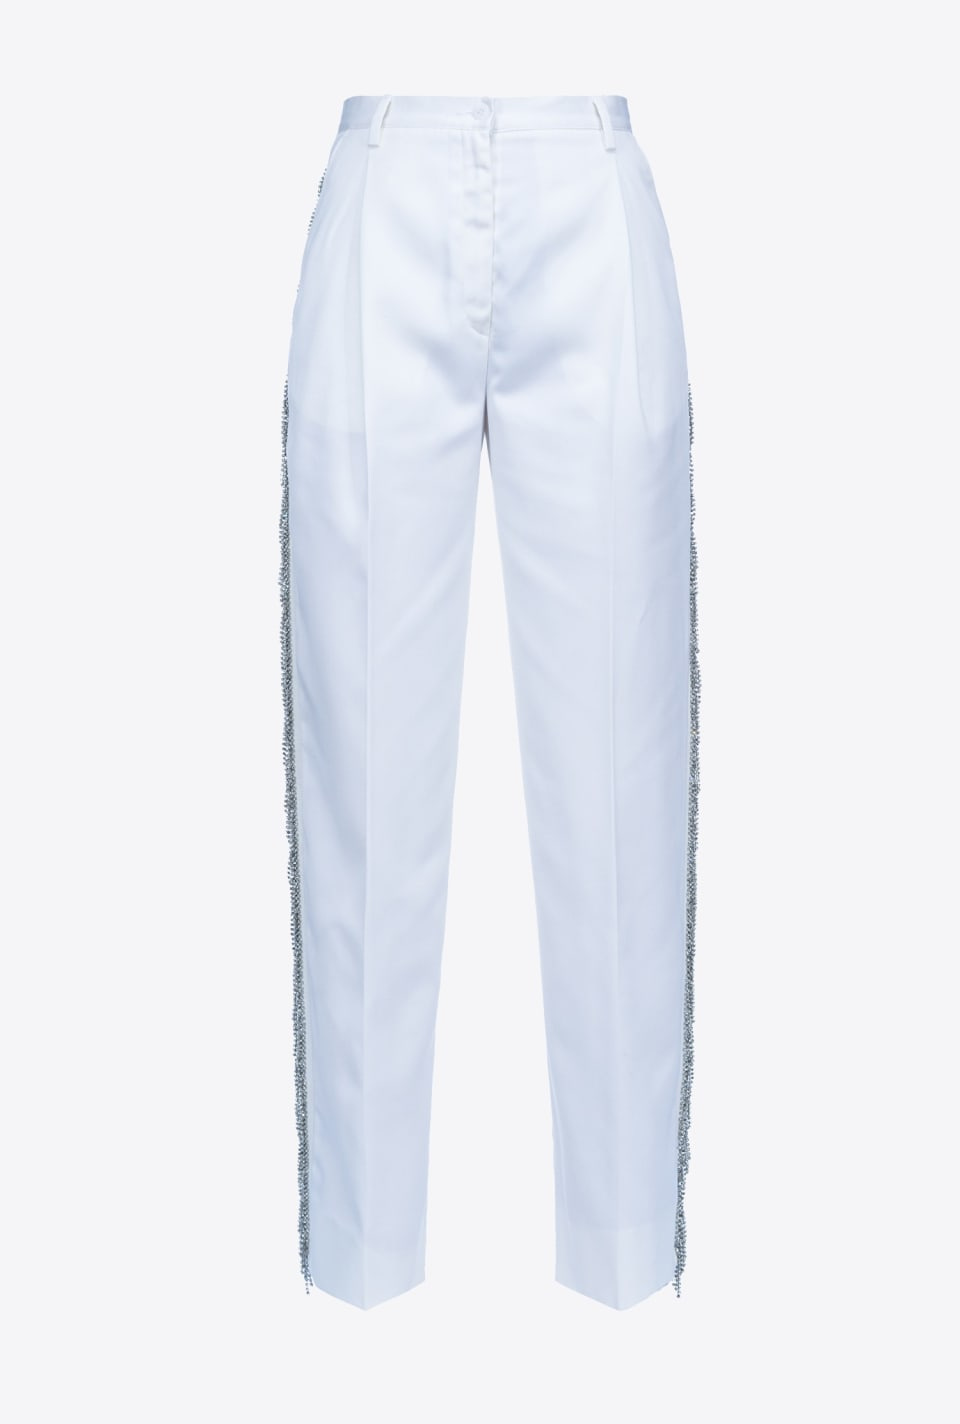 REIMAGINE white trousers - Pinko